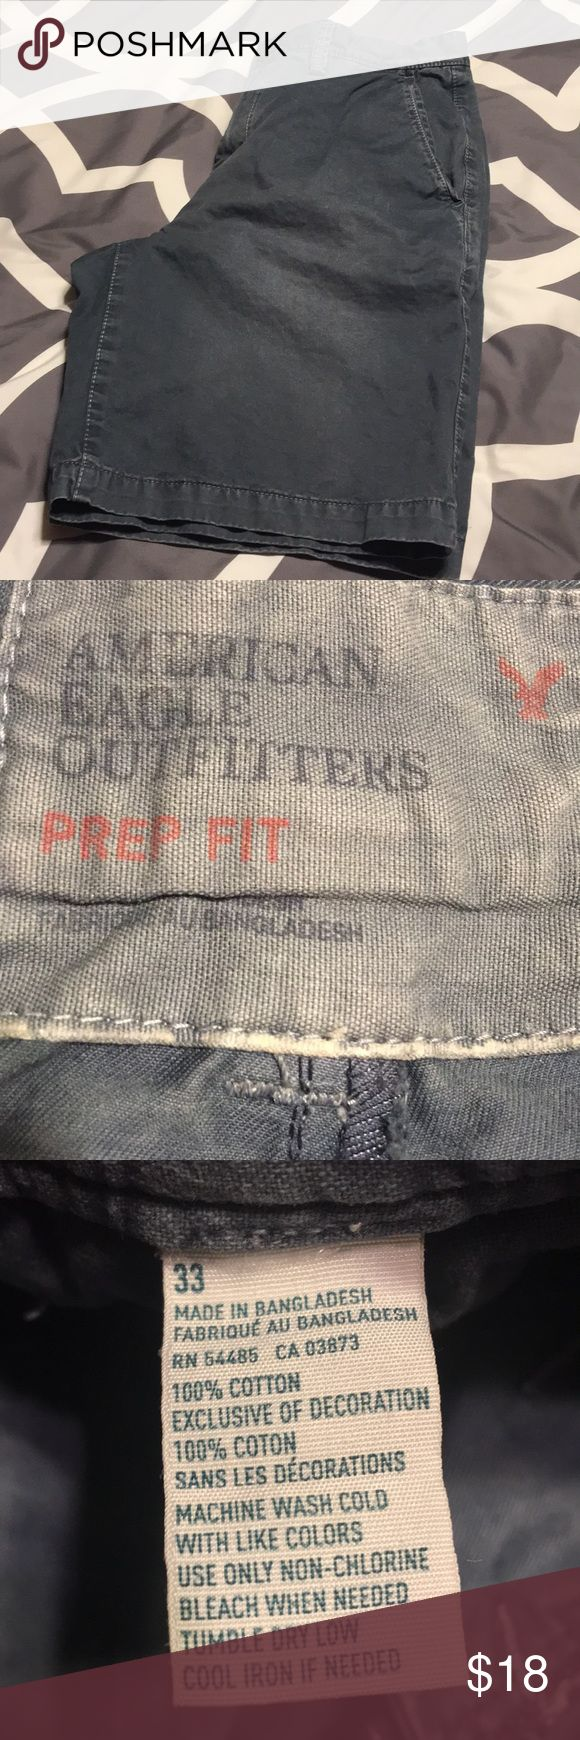 American Eagle Men's prep fit shorts 33 Pre owned in great distressed condition. Size 33. See pics for details. American Eagle Outfitters Shorts